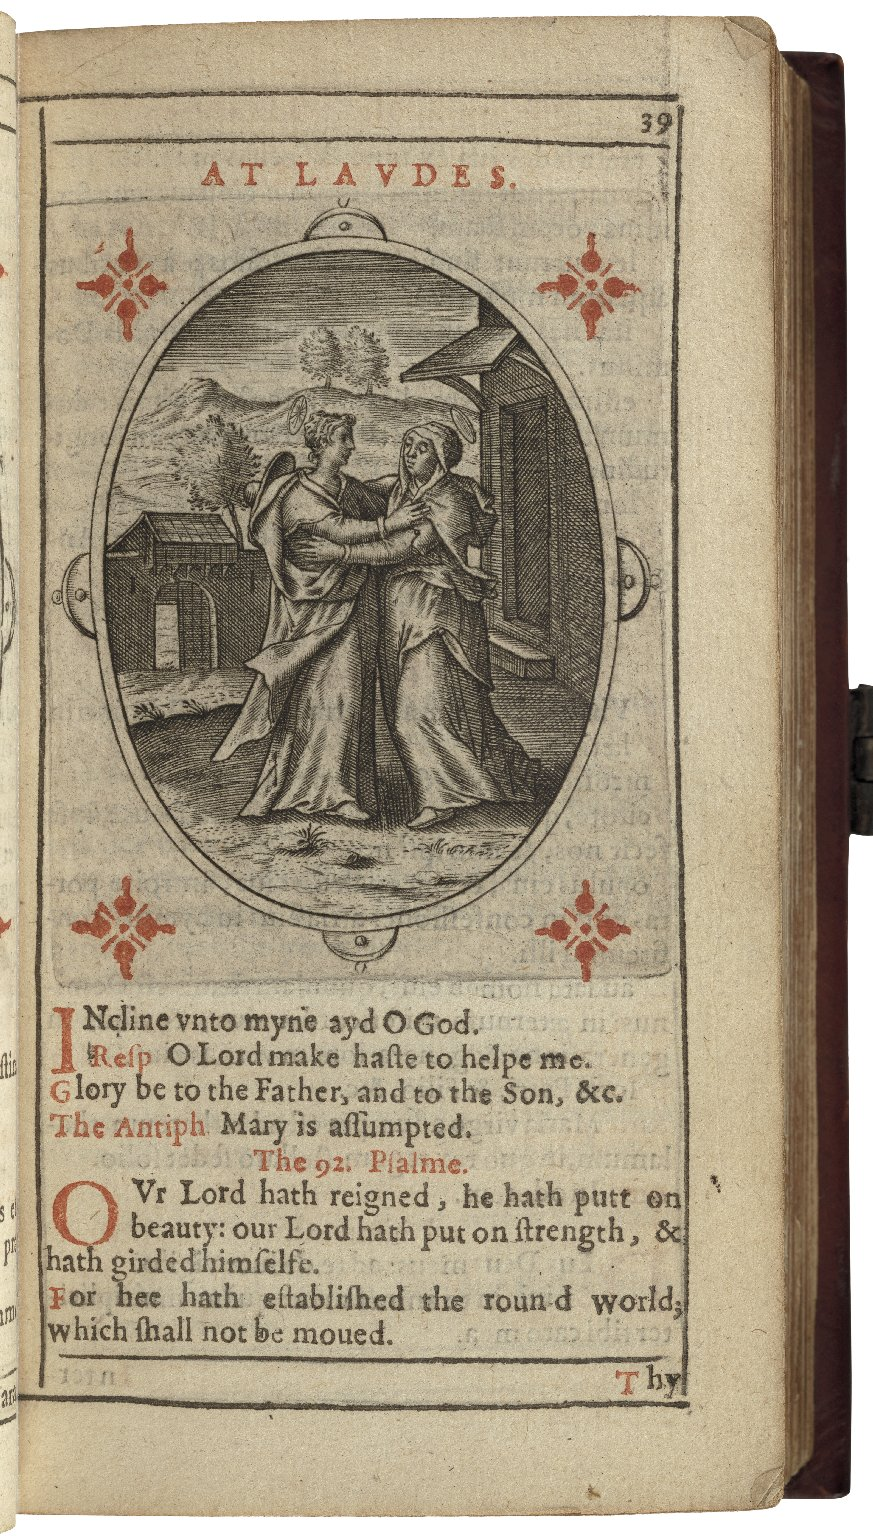 The primer, or Office of the Blessed Uirgin Marie, in Latin and English: according to the reformed Latin. And with like graces priuileged.